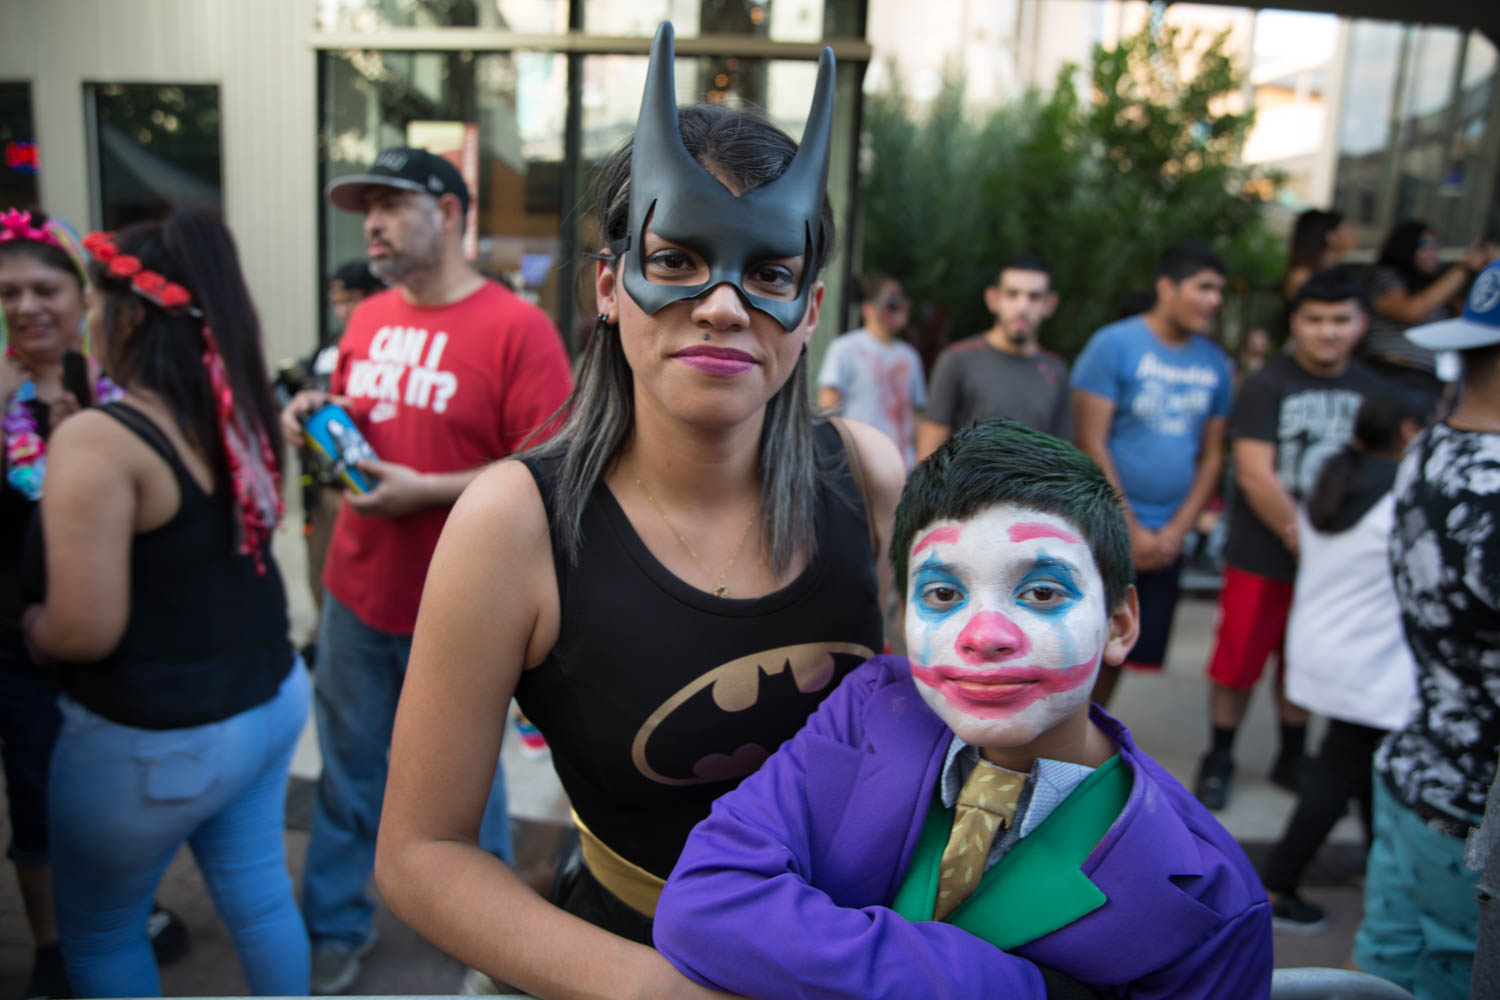 Photos: The undead strolled San Antonio streets during the Zombie Walk on Sunday